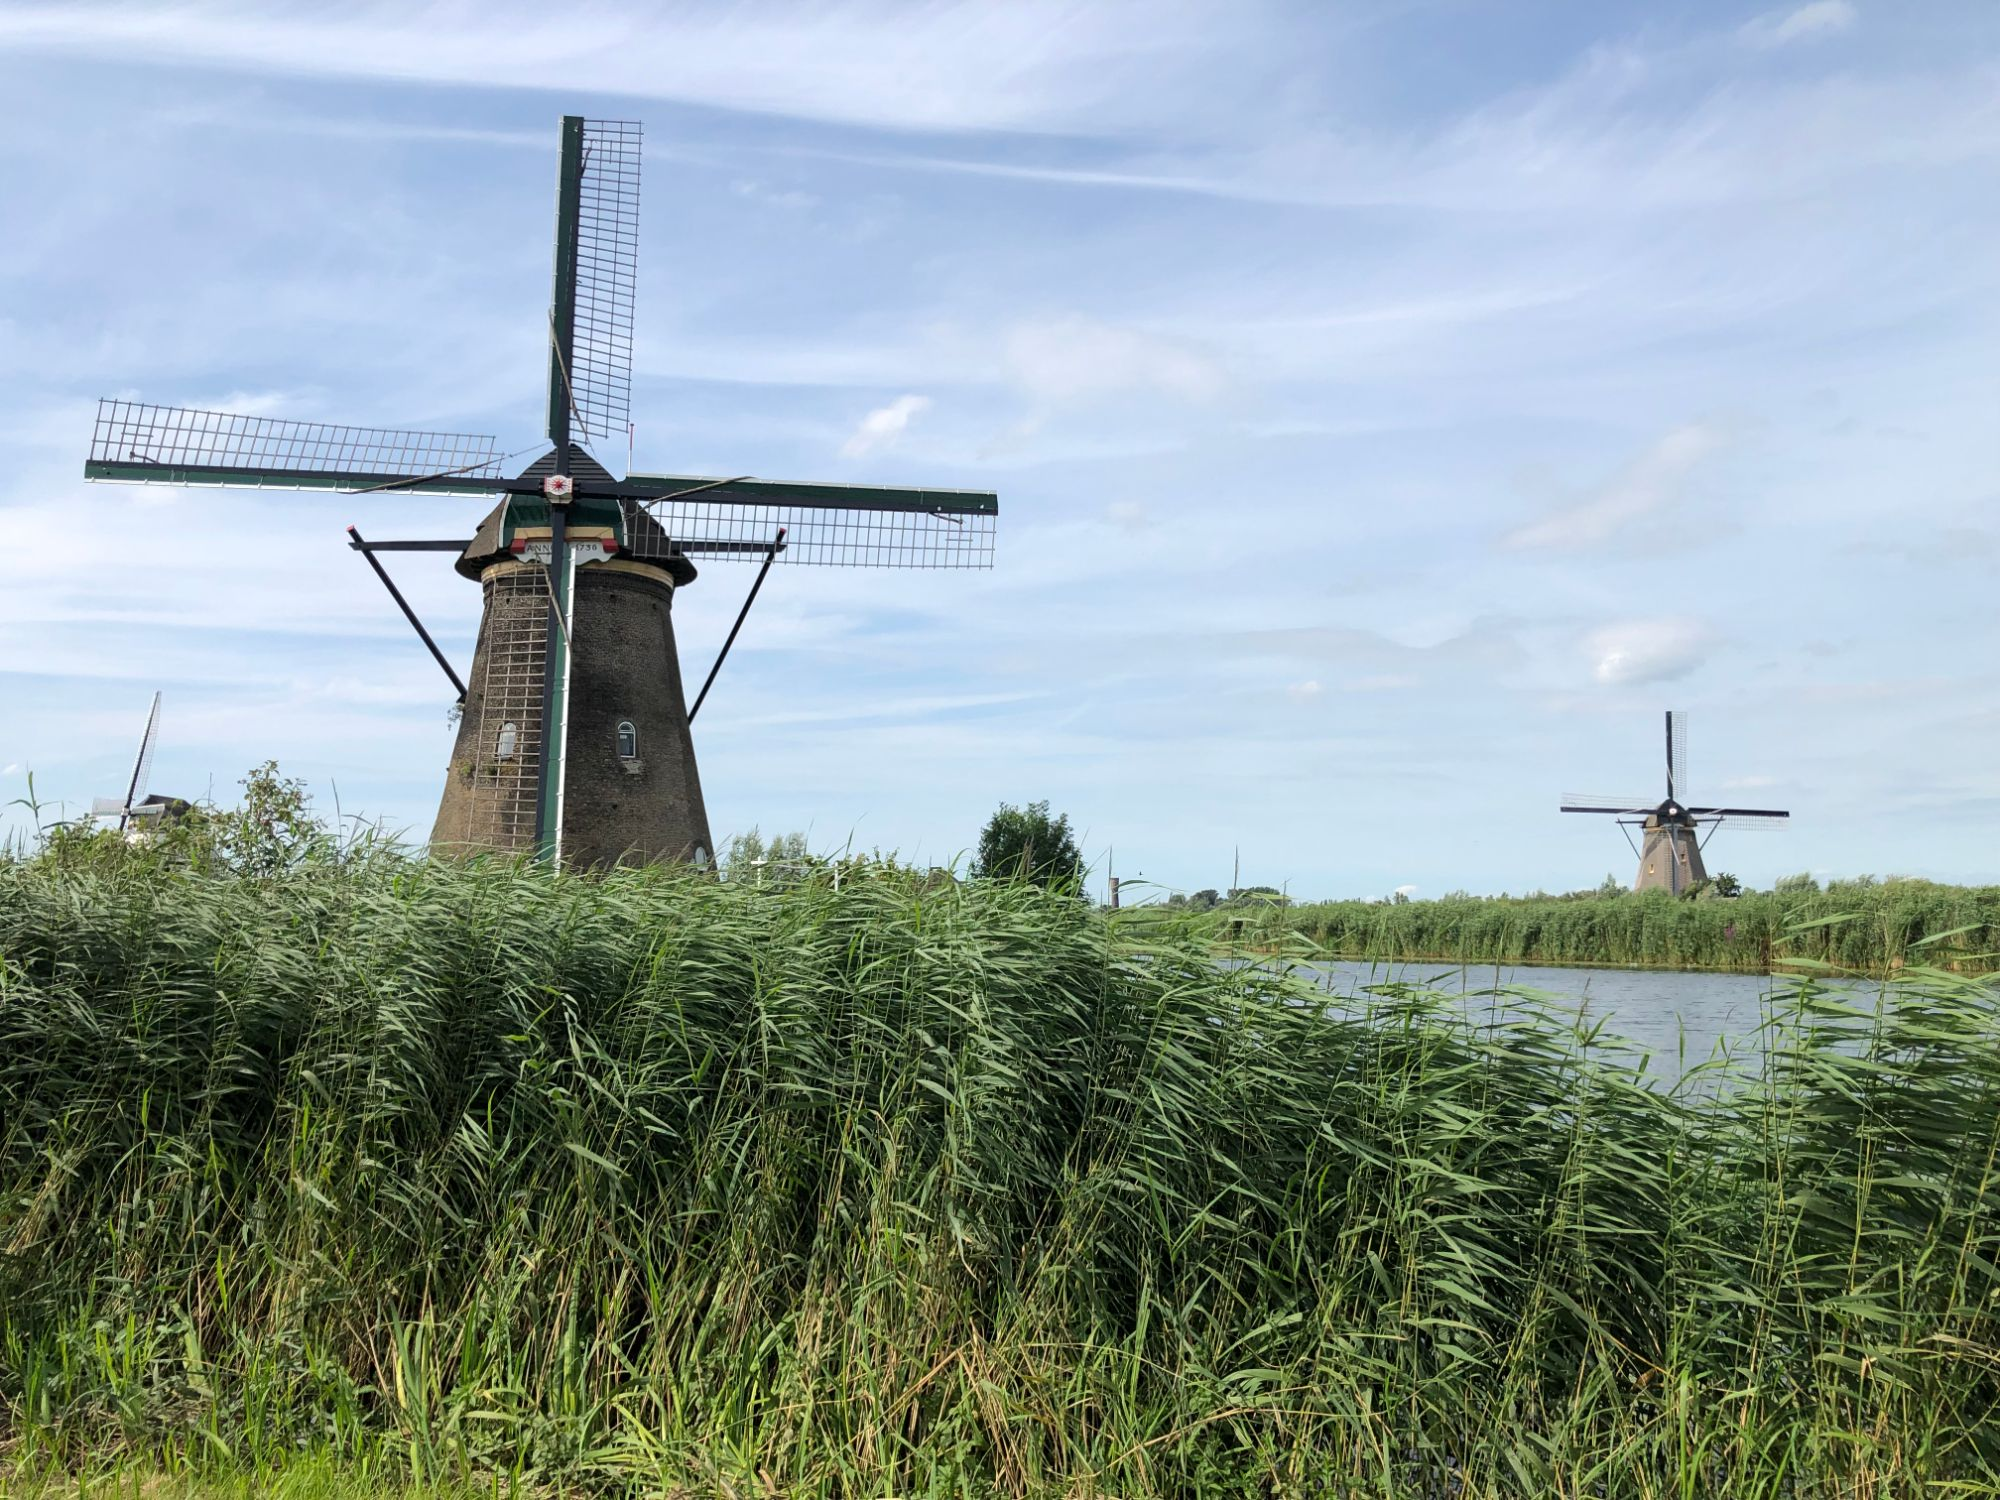 Free stock photo Kinderdijk Windmills UNESCO World Heritage Site Netherlands